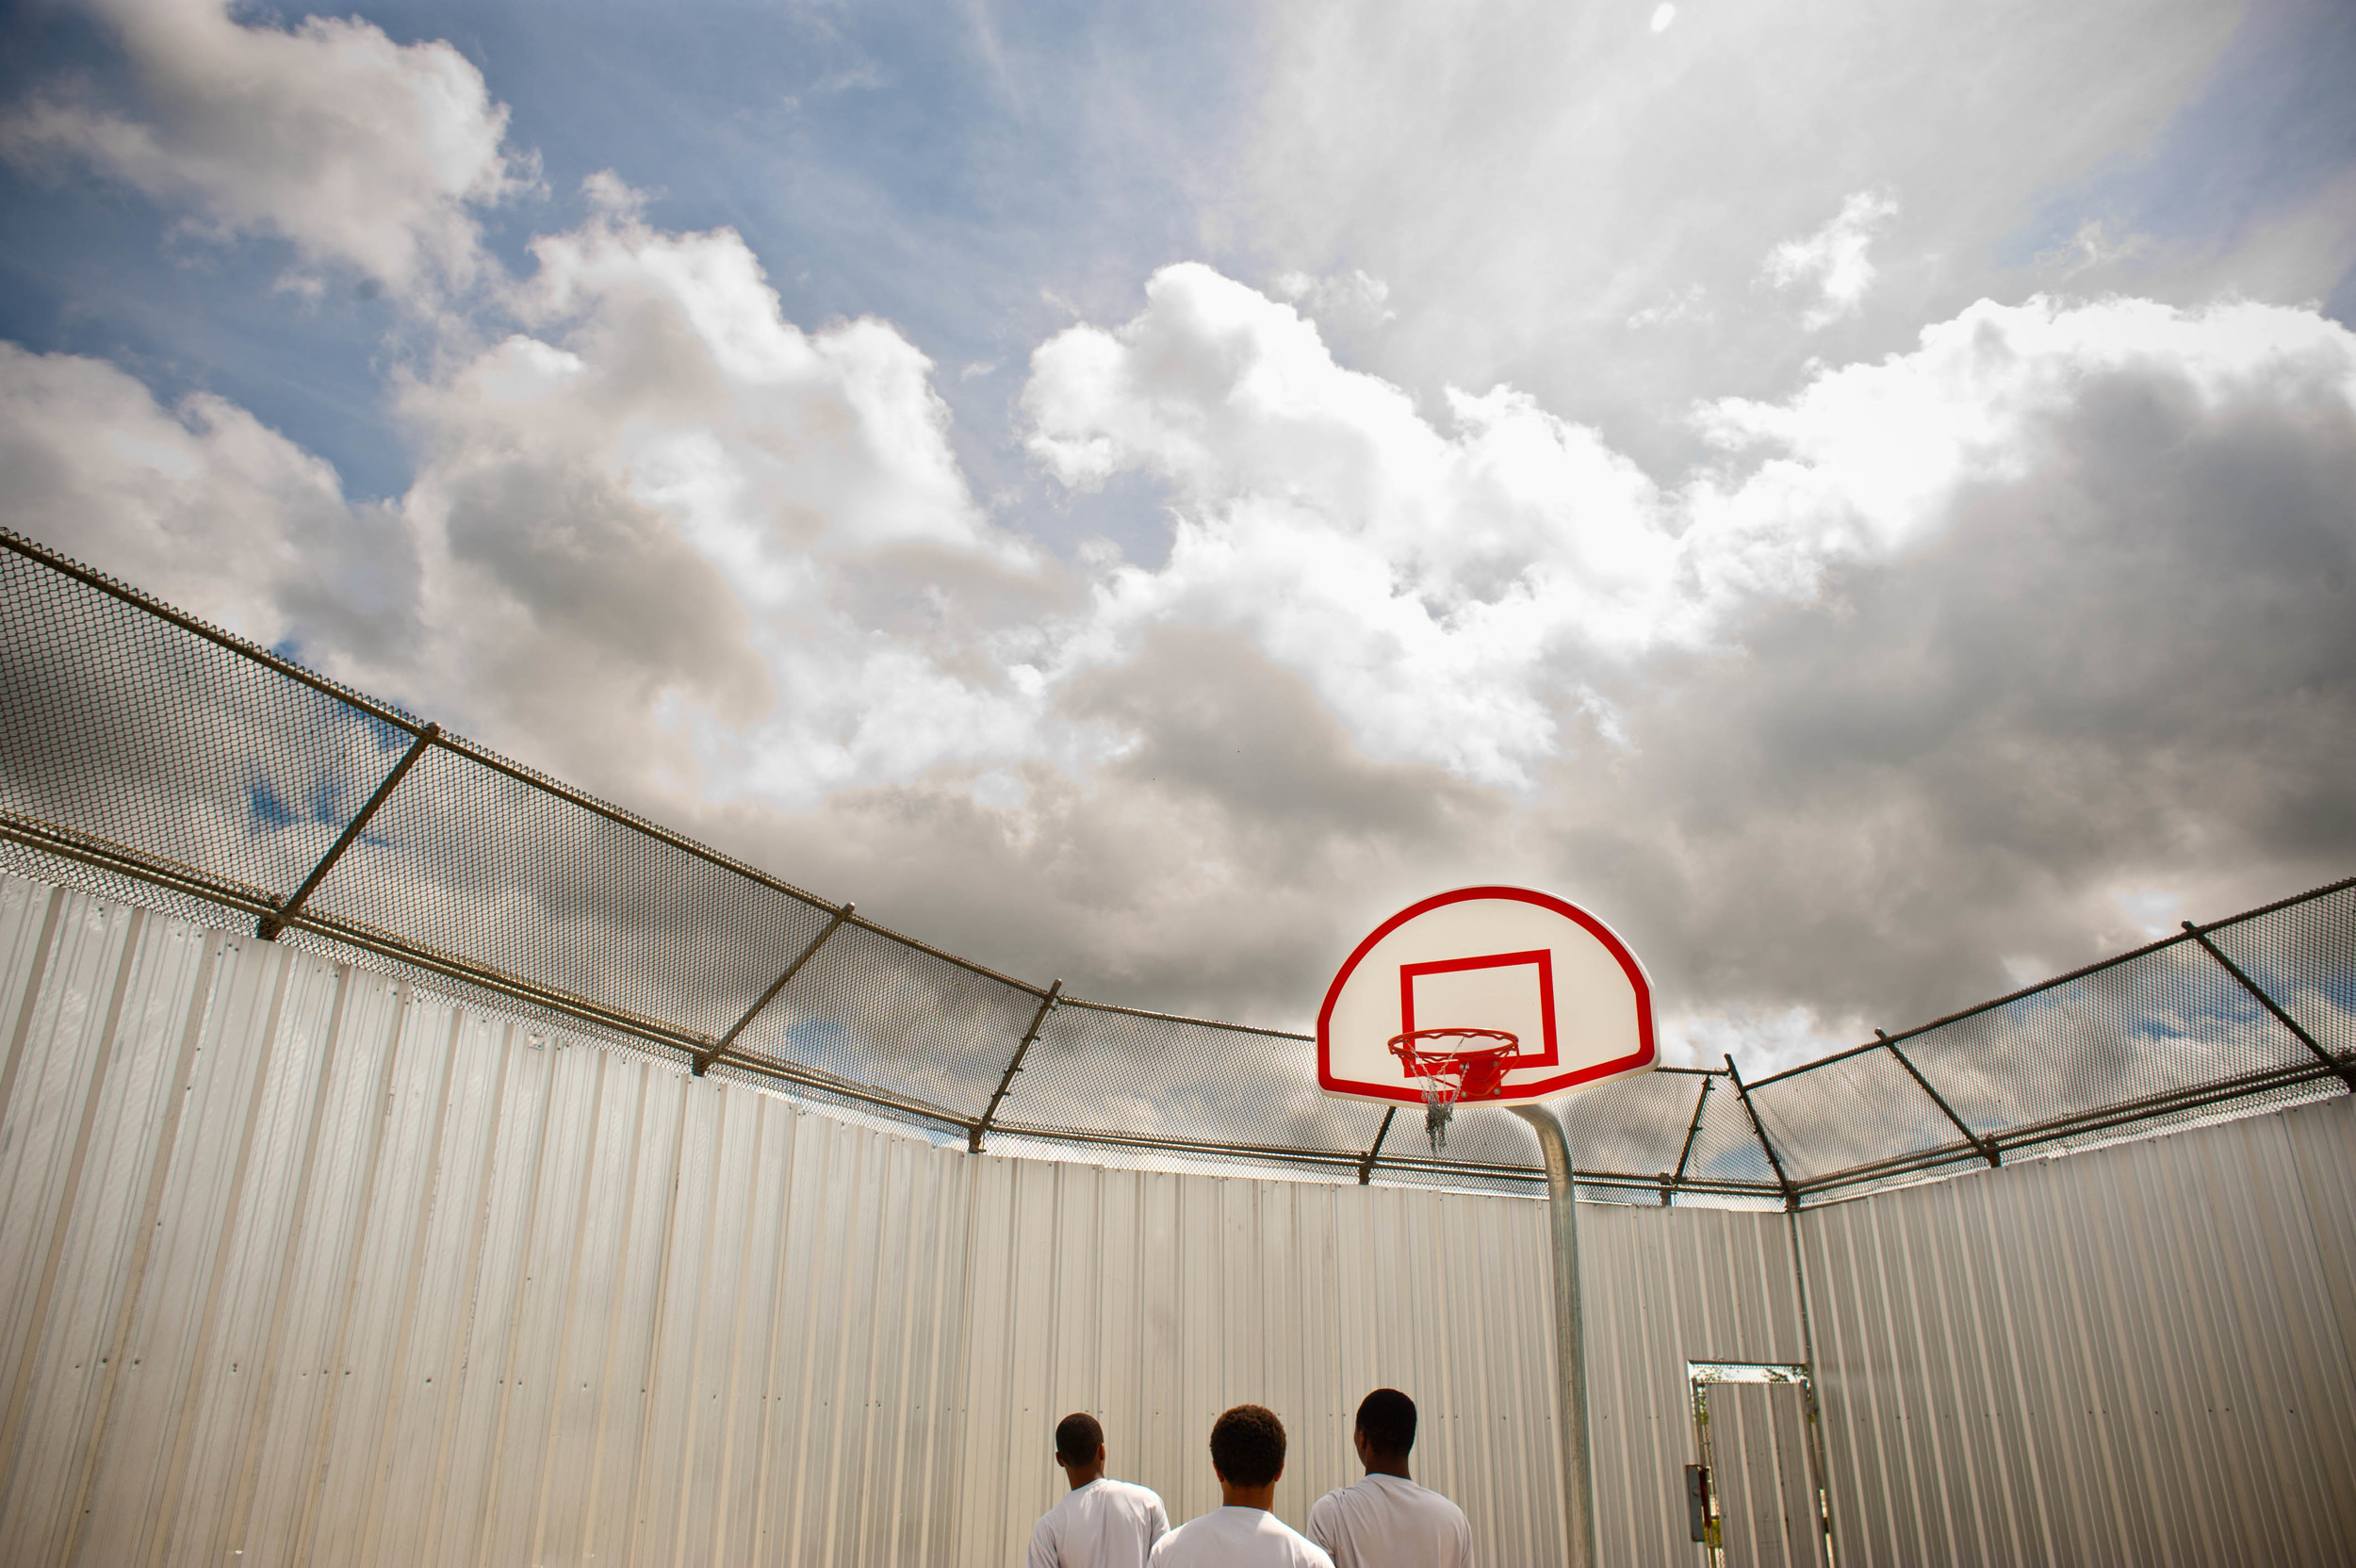 Teenage boys play basketball at the Youth Study Center juvenile detention facility in New Orleans, LA.